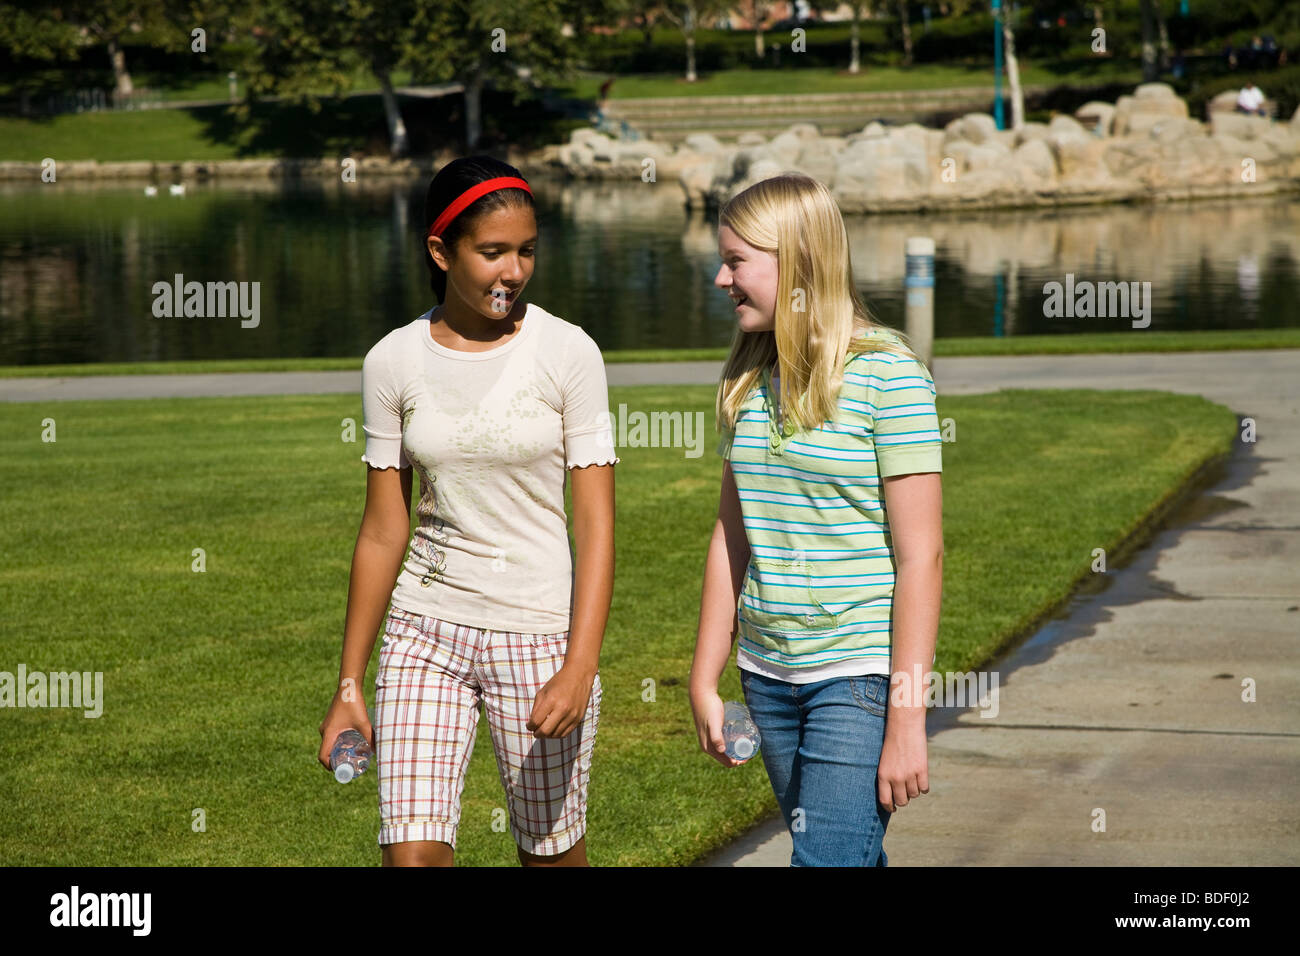 Two girls 11-13 year old hang hanging out together Hispanic and Caucasian girls walk Walking sidewalk Tween tweens - Stock Image